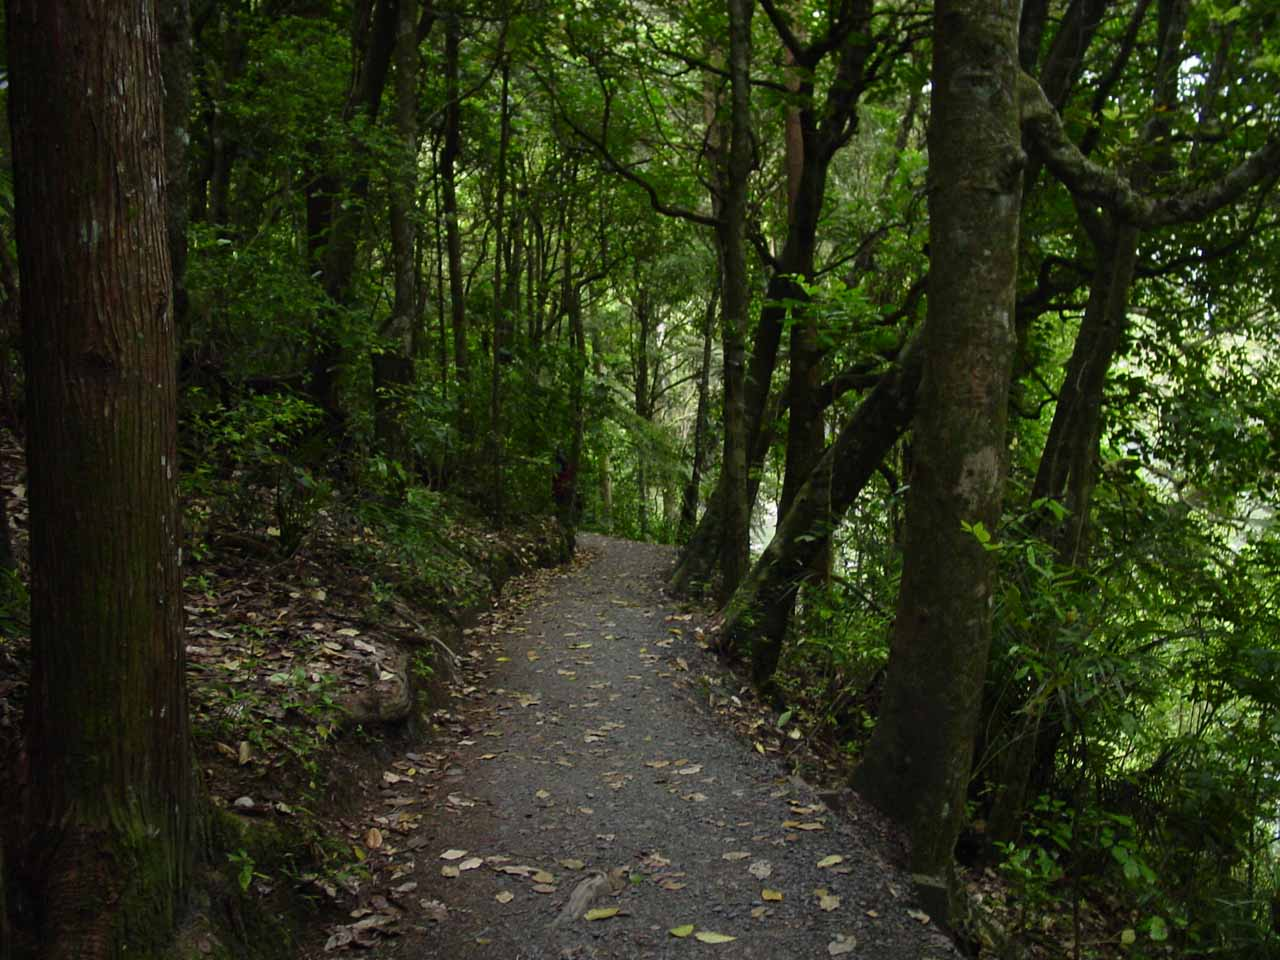 Continuing the descent towards Whangarei Falls as we were flanked by attractive trees